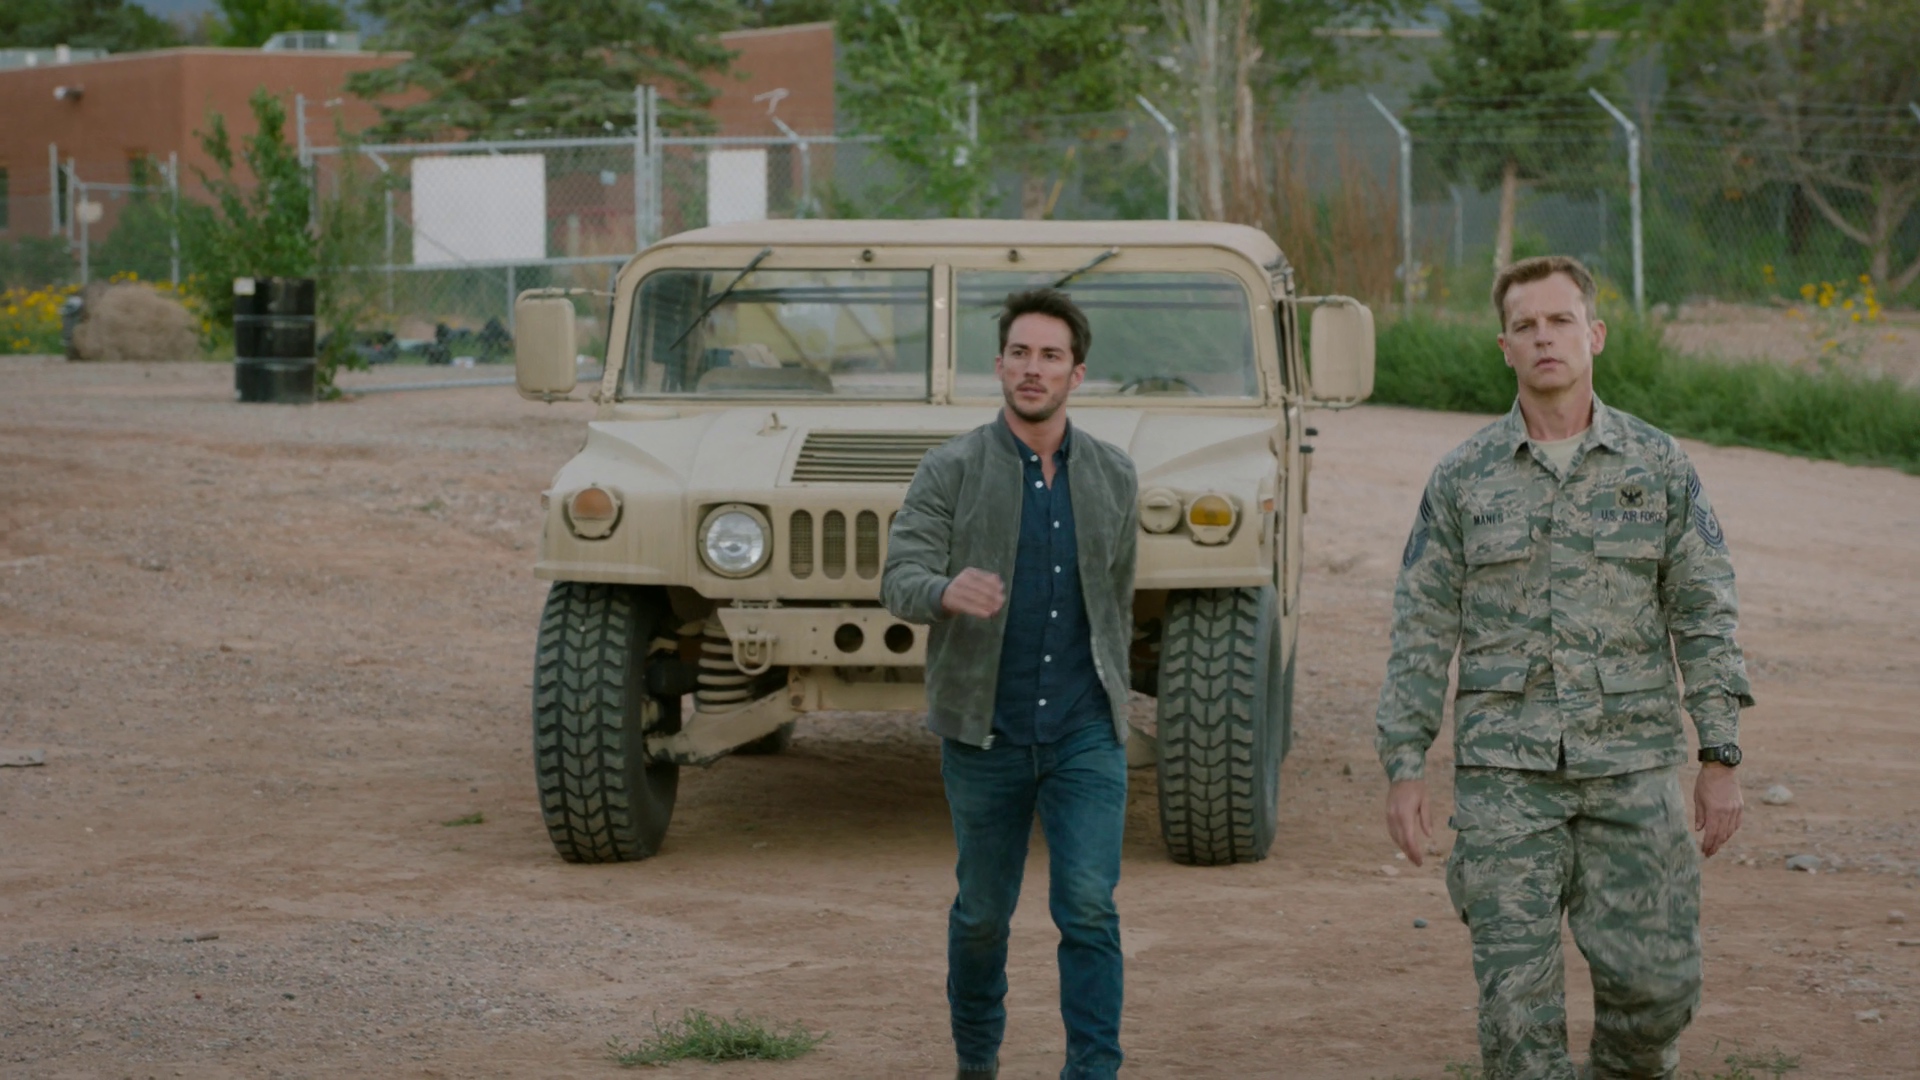 Roswell New Mexico - Stagione 1 (2019) (Completa) WEBMux 1080P HEVC ITA ENG AC3 x265 mkv Vlcsnap-2019-09-08-14frki0